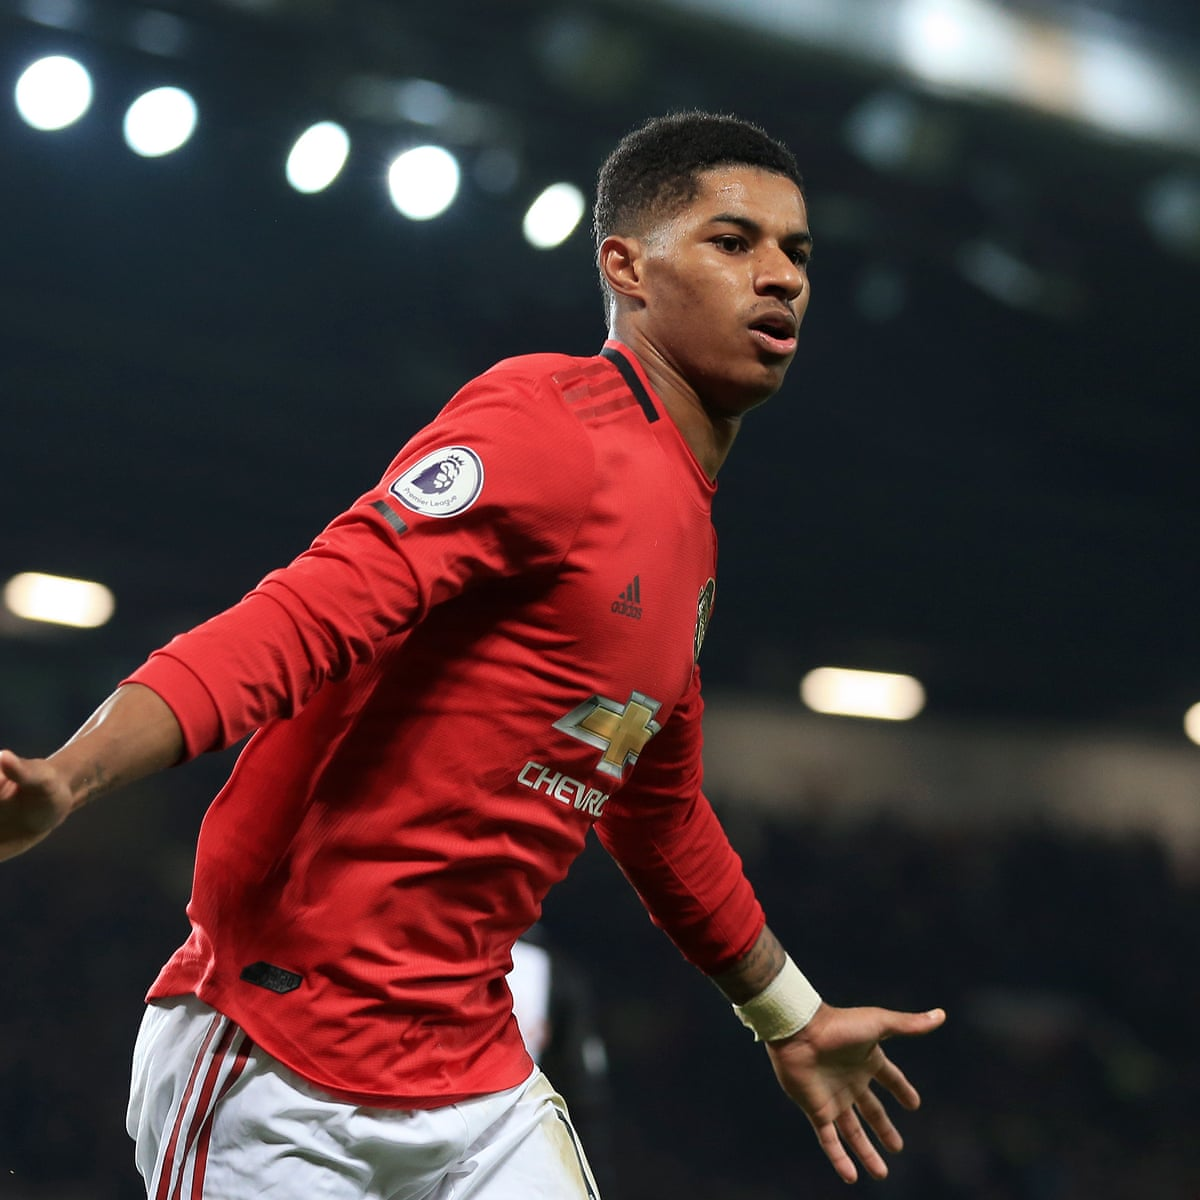 Marcus Rashford Gets Honorary Doctorate For Work Against Child Poverty Marcus Rashford The Guardian